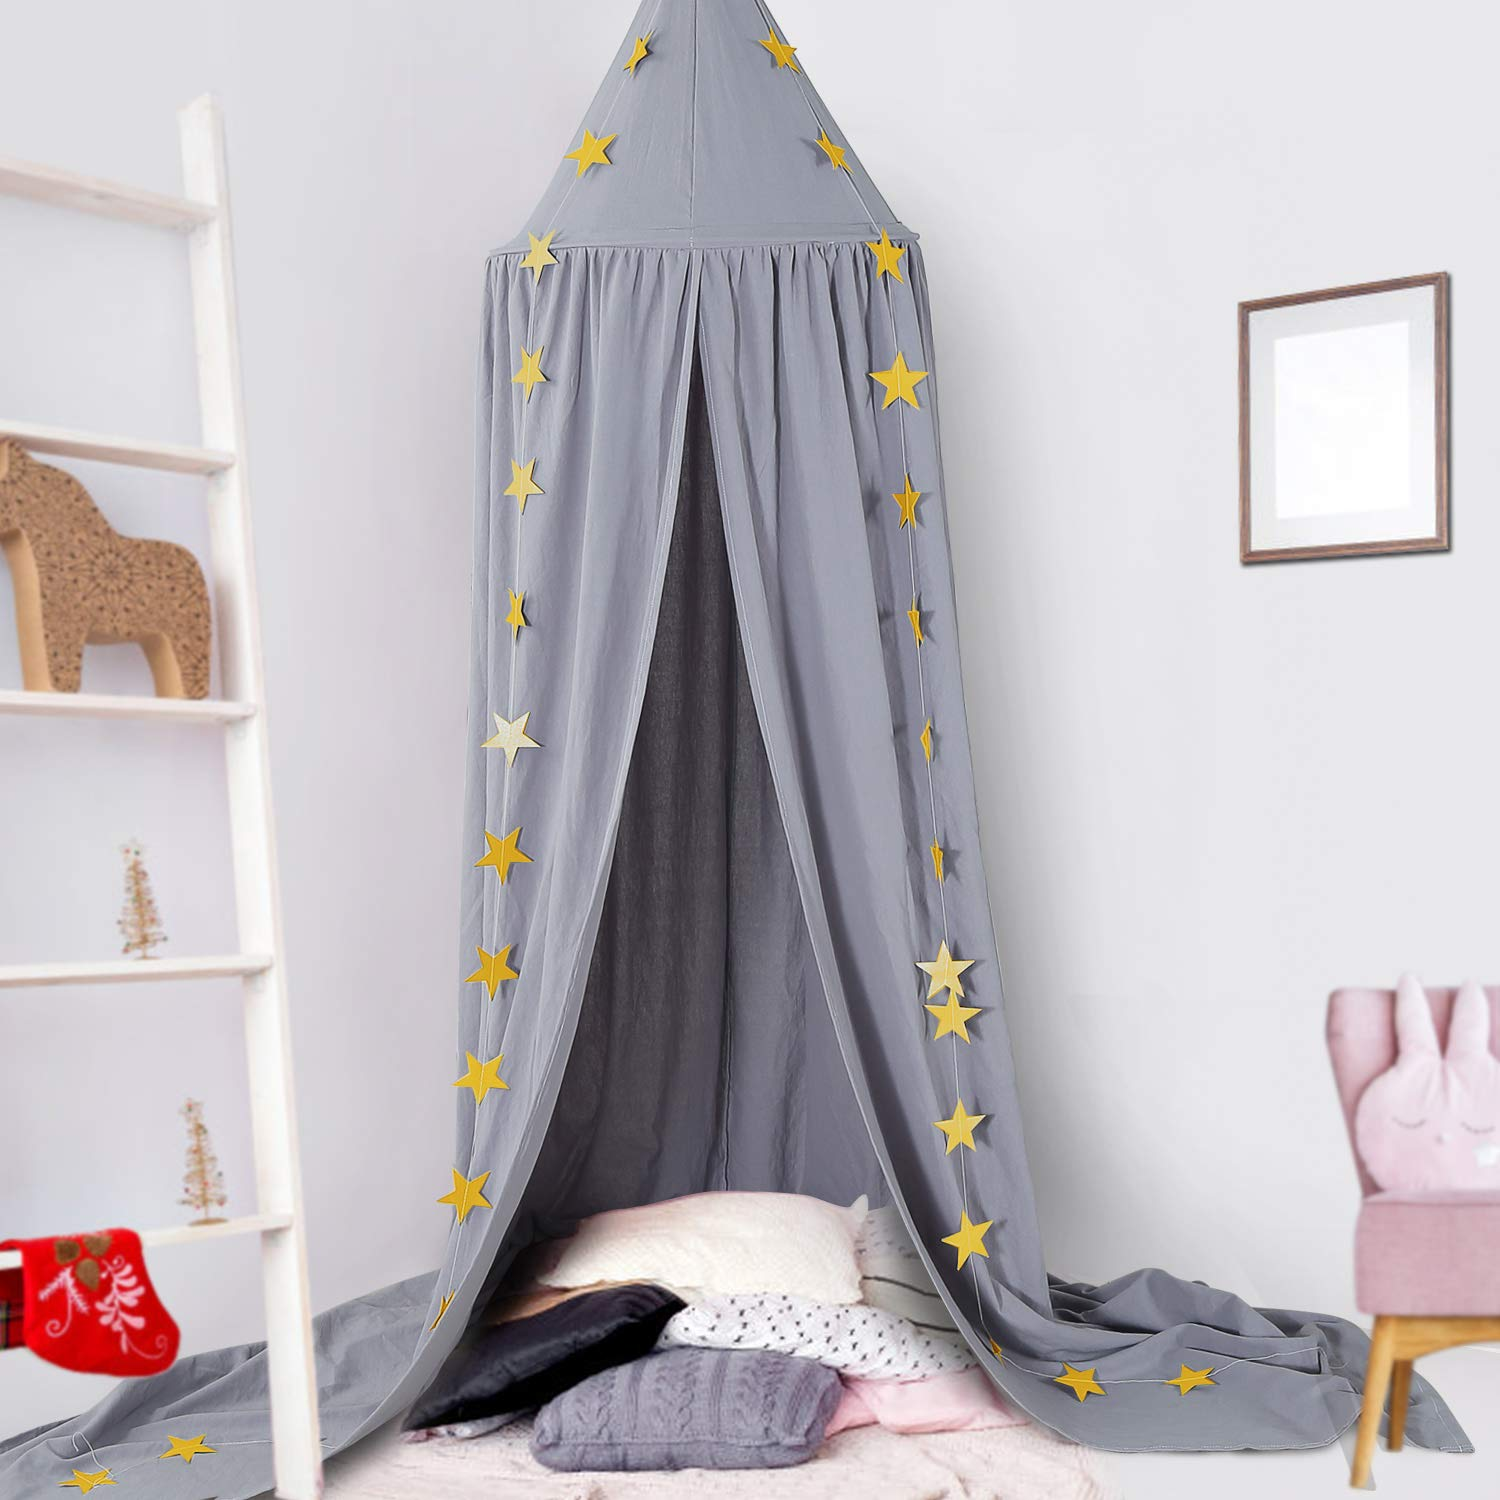 Ceekii Canopy for Girls Bed, Round Dome Hook Cotton Princess Mosquito Net Canopy Kids Bedroom Games Reading Tent Nursery Play Room Decor (Gray) by CeeKii